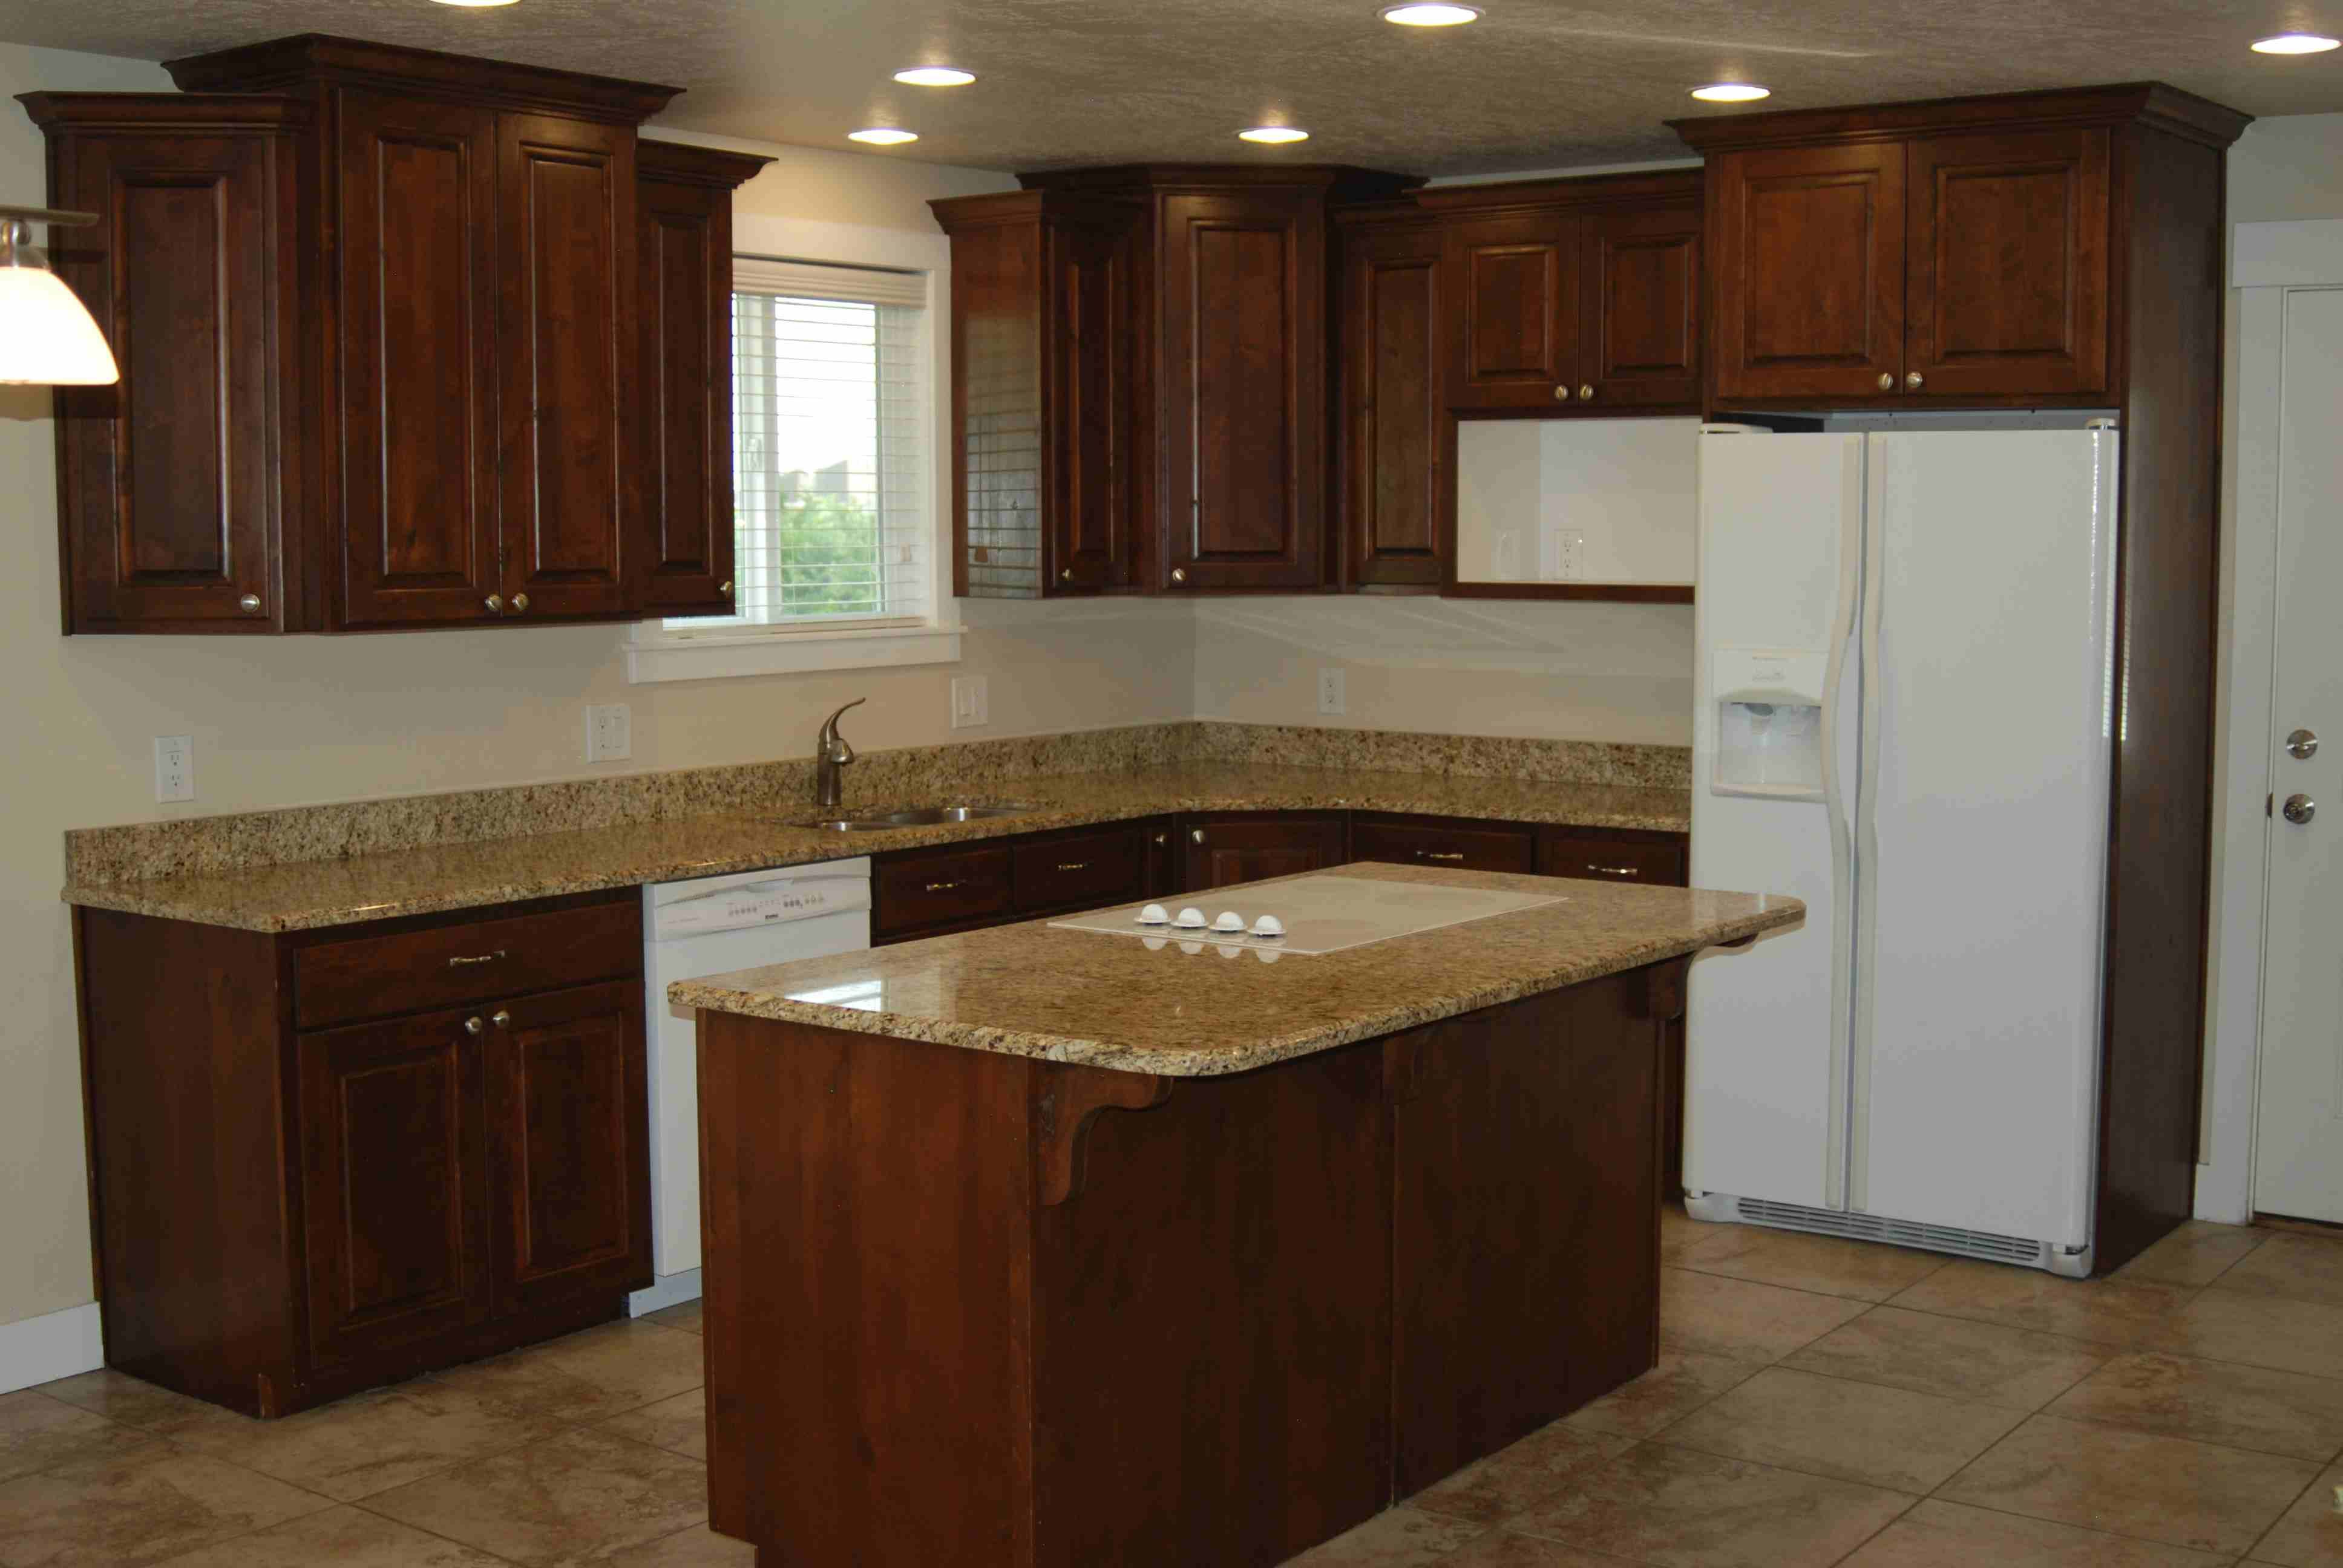 rambler kitchen remodels - Bing Images | Home remodeling ... on cape cod remodeling ideas, ranch style house additions ideas, colonial remodeling ideas, contemporary remodeling ideas, custom remodeling ideas, mobile home landscaping ideas, low ceiling basement remodeling ideas,